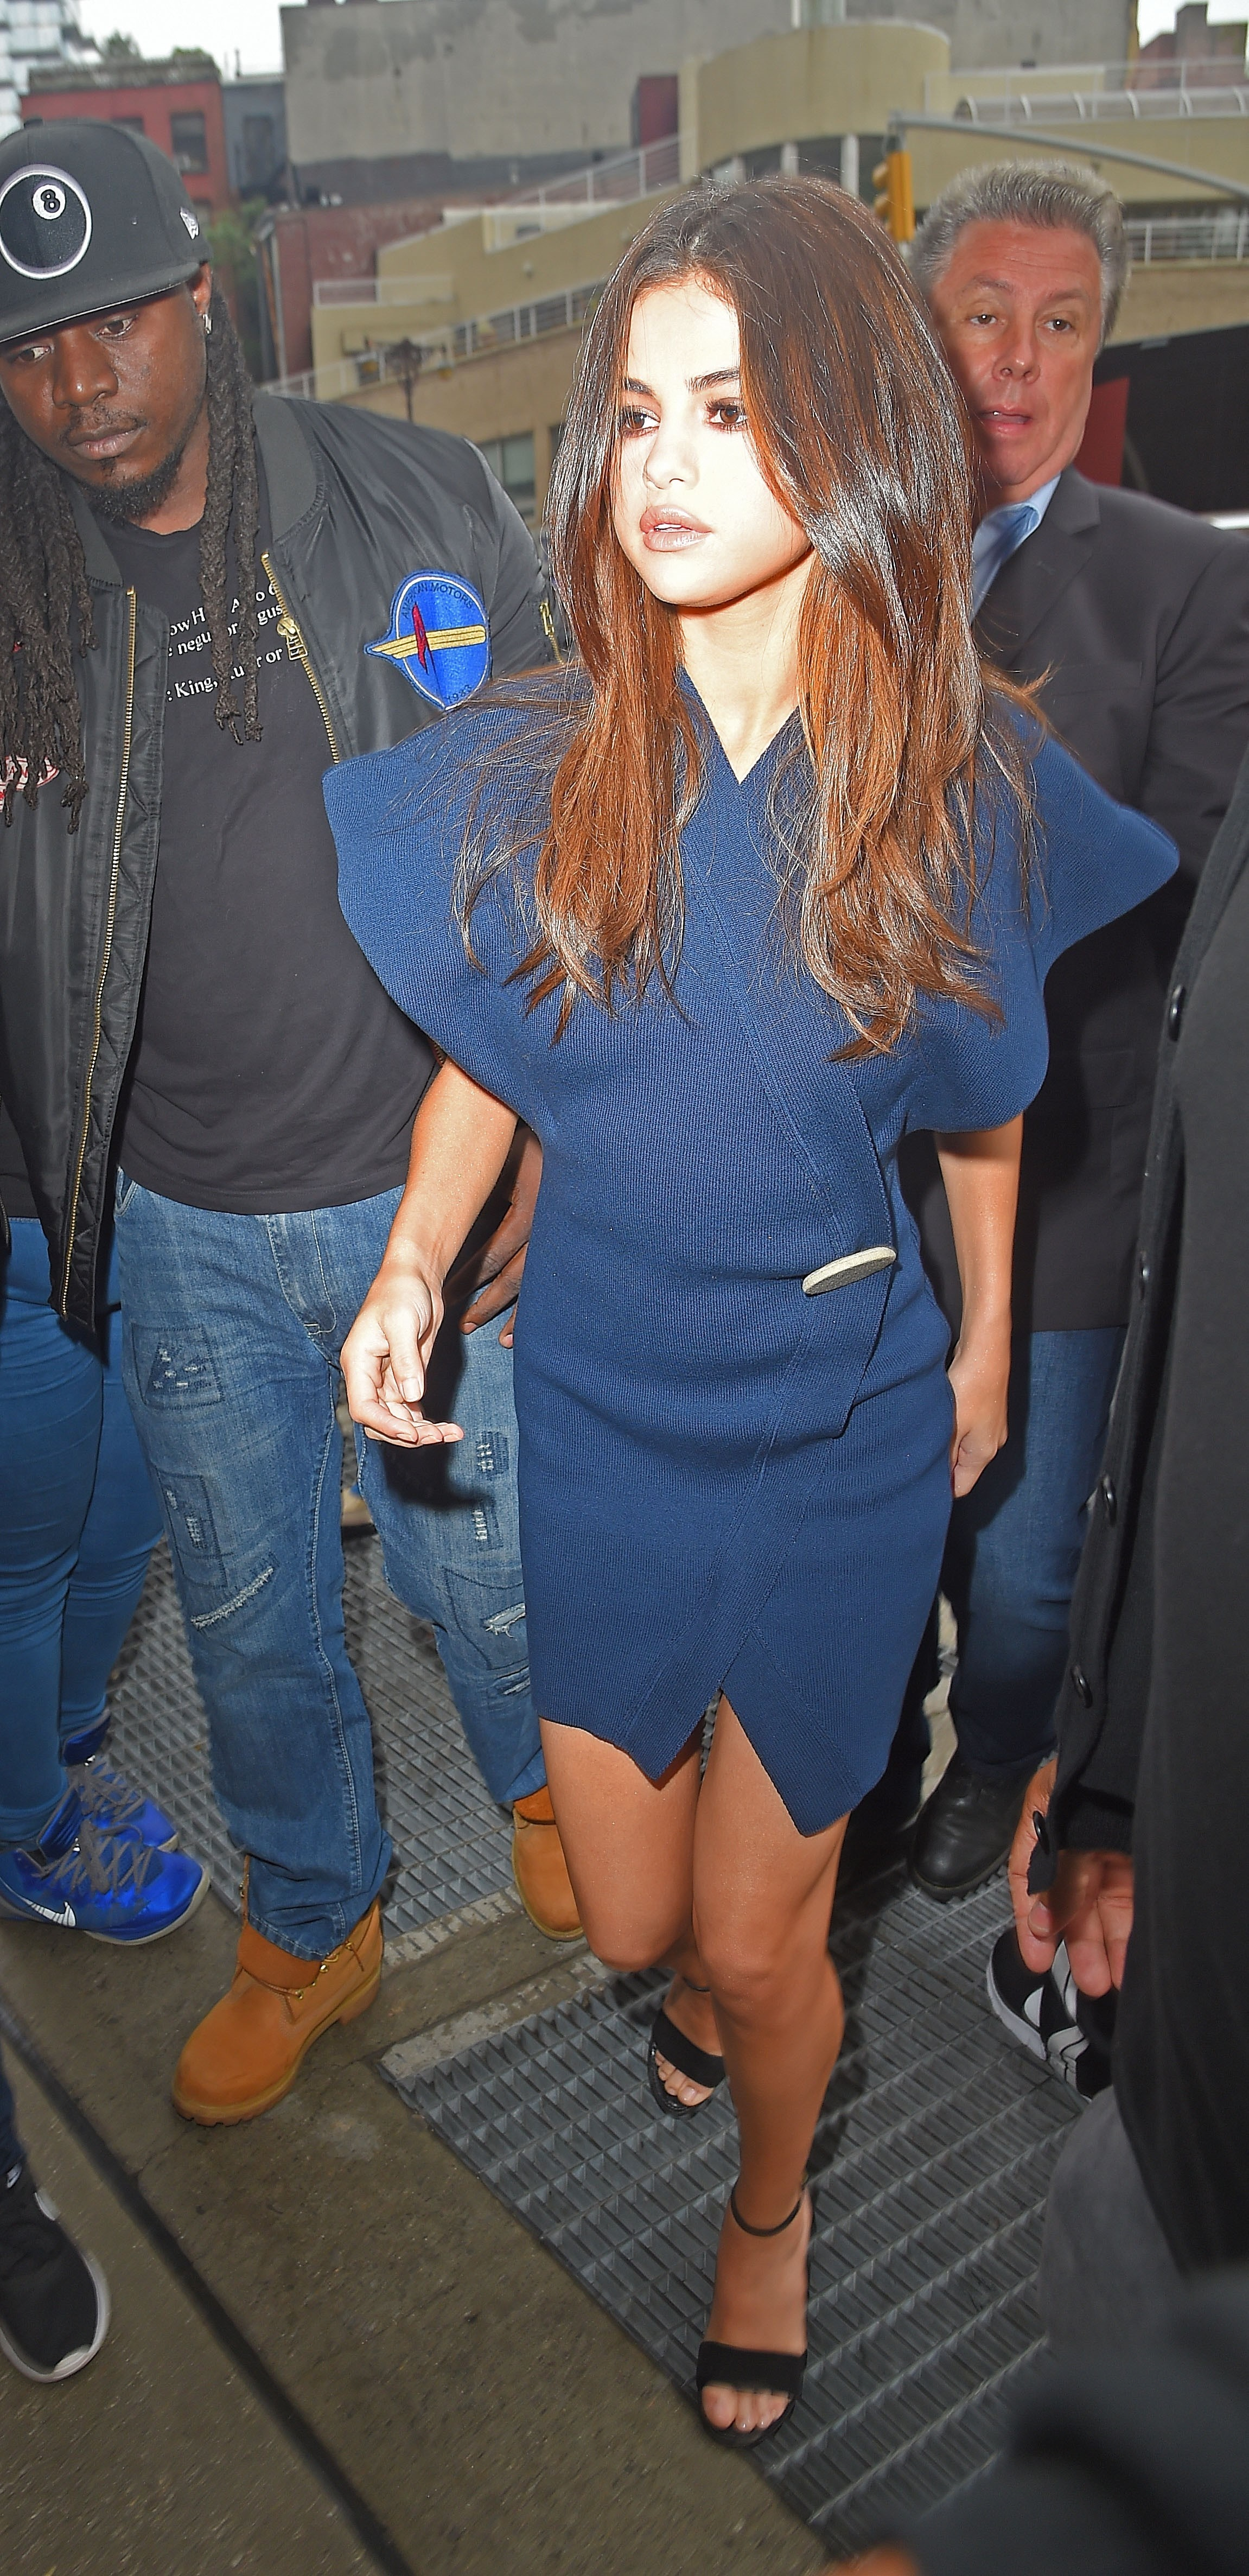 New York, NY  - Selena Gomez is spotted out in Manhattan. The 'Bad Liar' singer shows off her chic fashion style in a mini blue wrap dress. She rocks a natural makeup look as she is spotted out during another day in NYC.  Pictured: Selena Gomez  BACKGRID USA 5 JUNE 2017, Image: 335143788, License: Rights-managed, Restrictions: , Model Release: no, Credit line: Profimedia, AKM-GSI